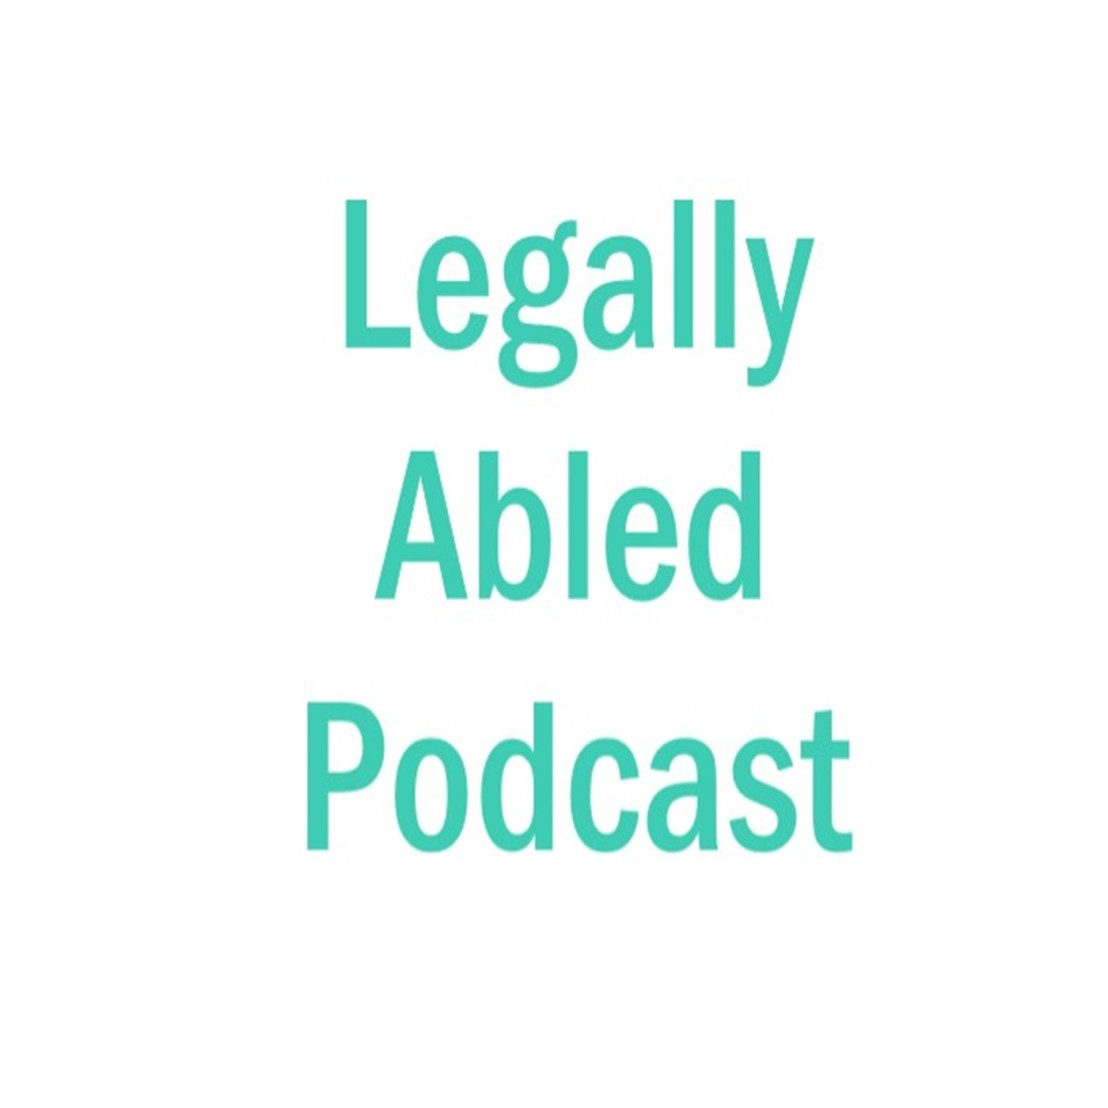 Welcome to the Legally AbledPodcast!